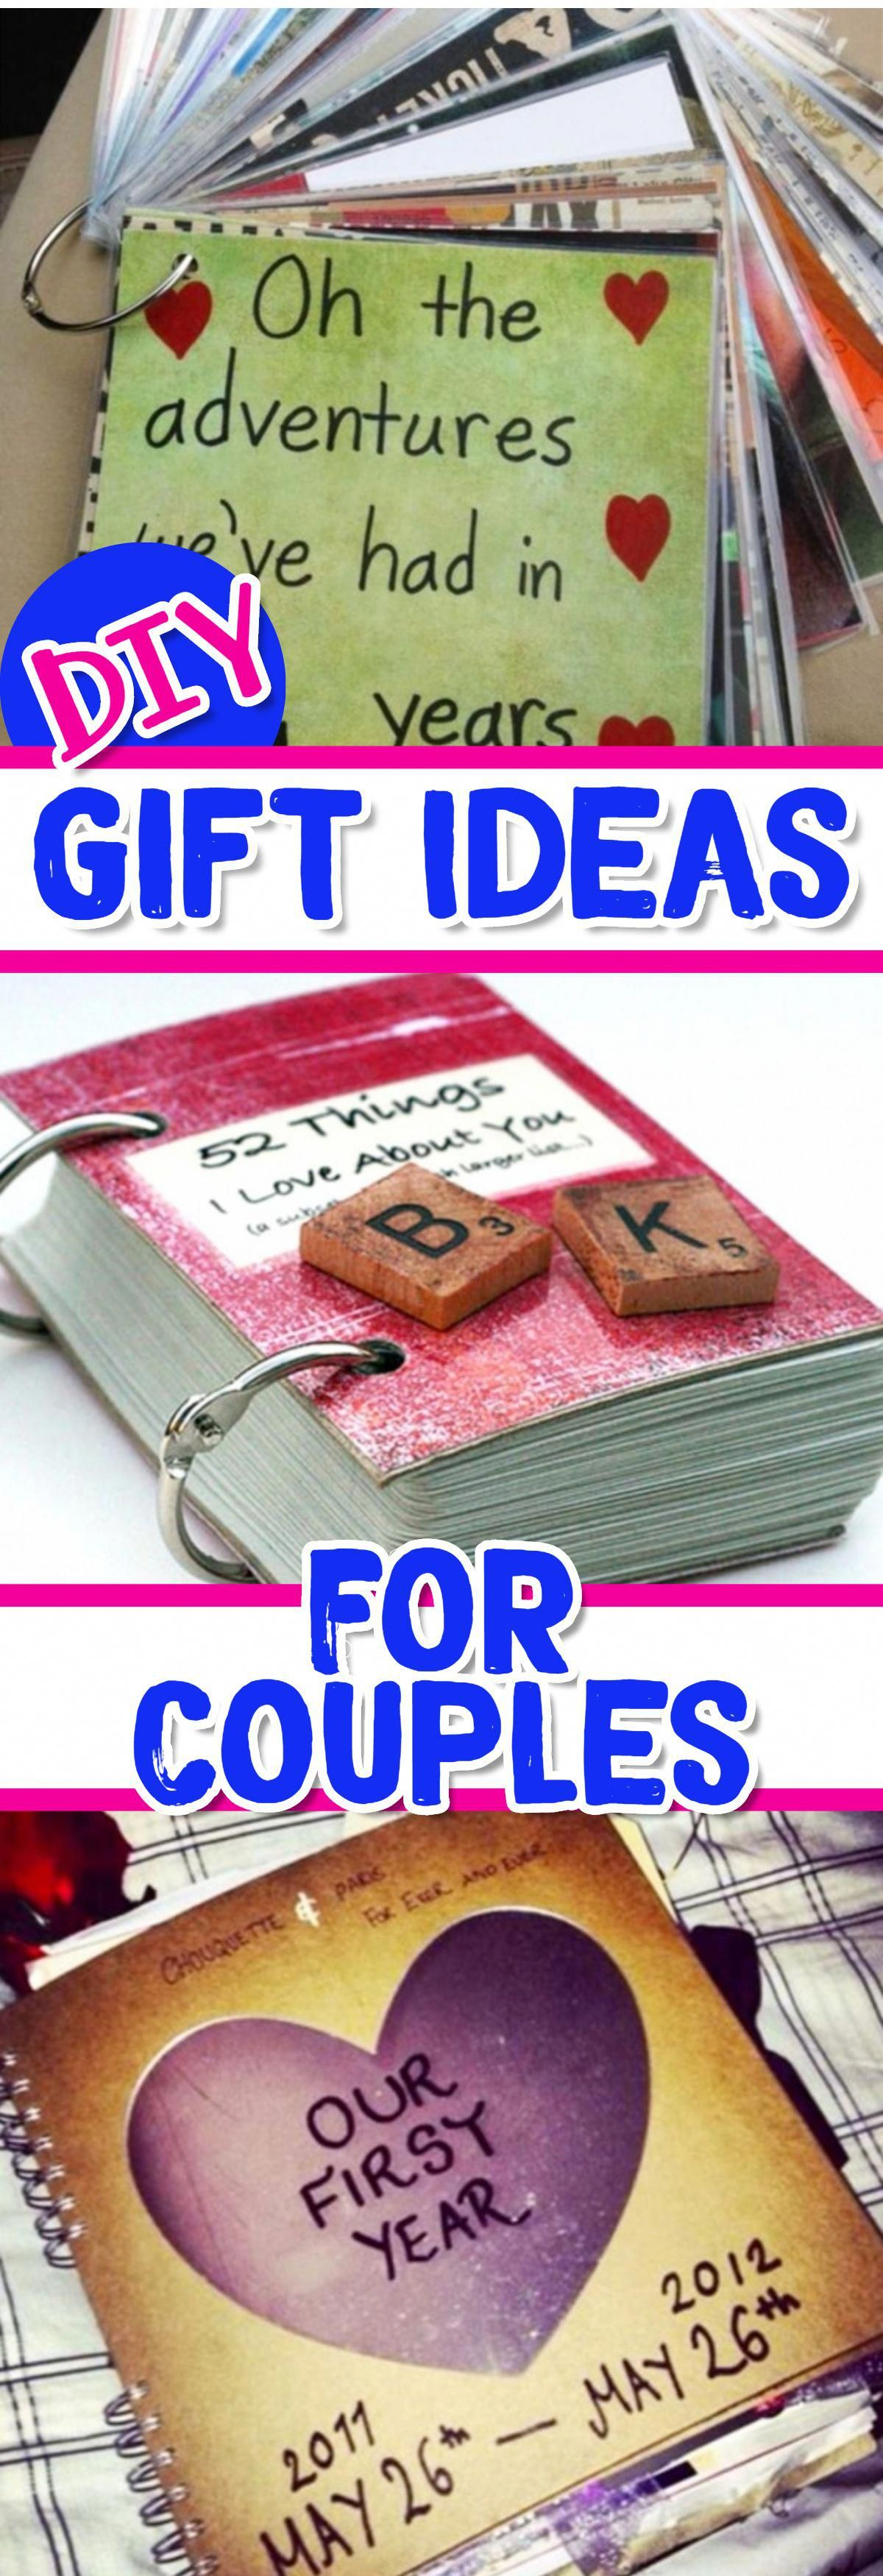 Diy gift ideas for him or for her giftsforhim